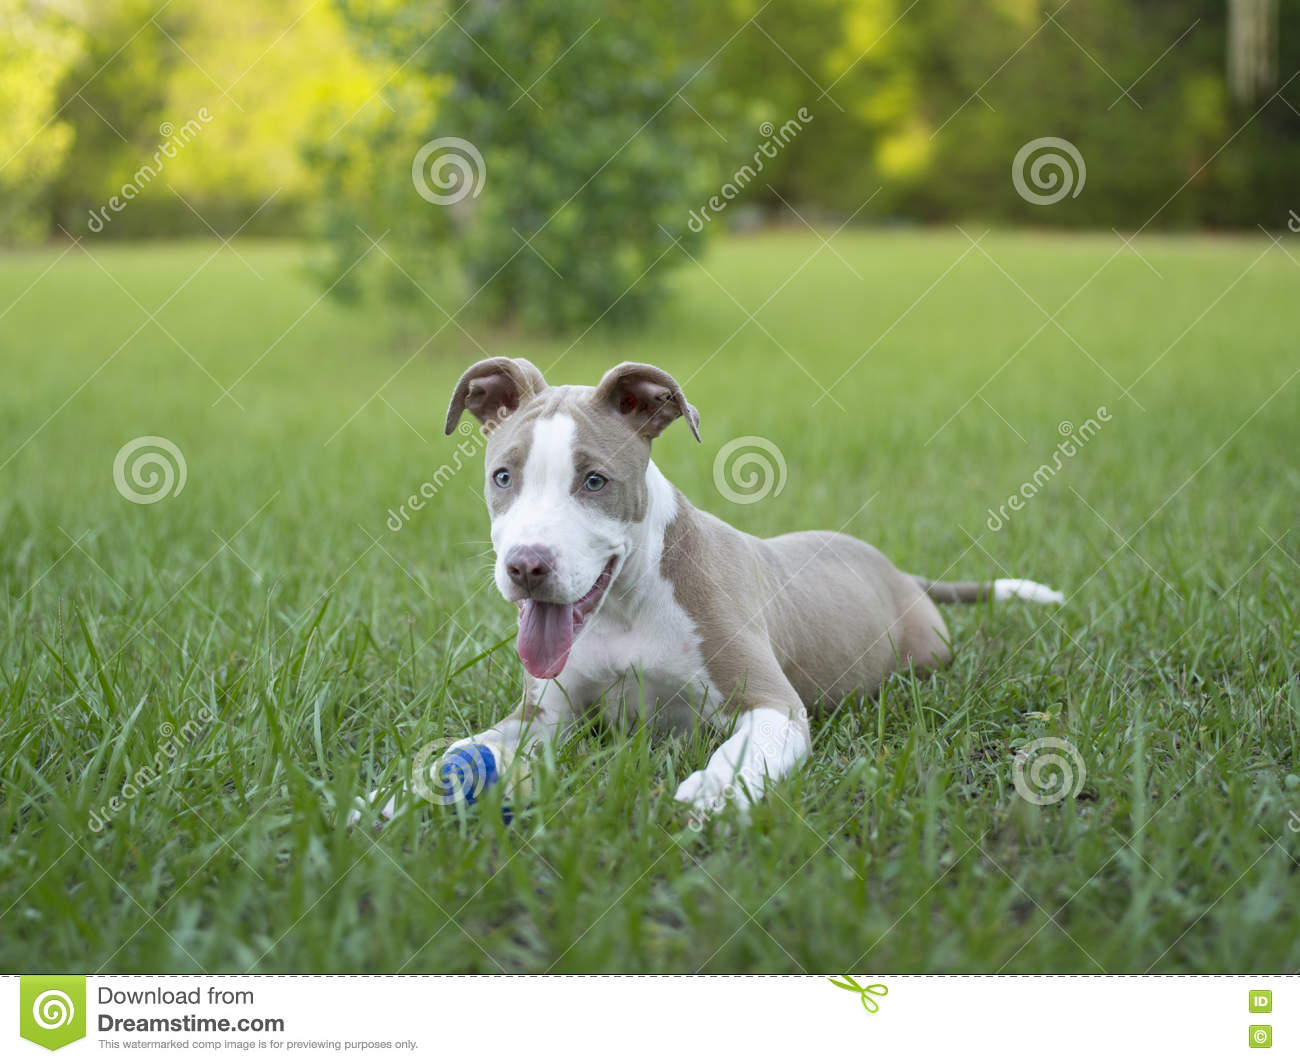 Cute Pitbull sitting in the grass with her ball